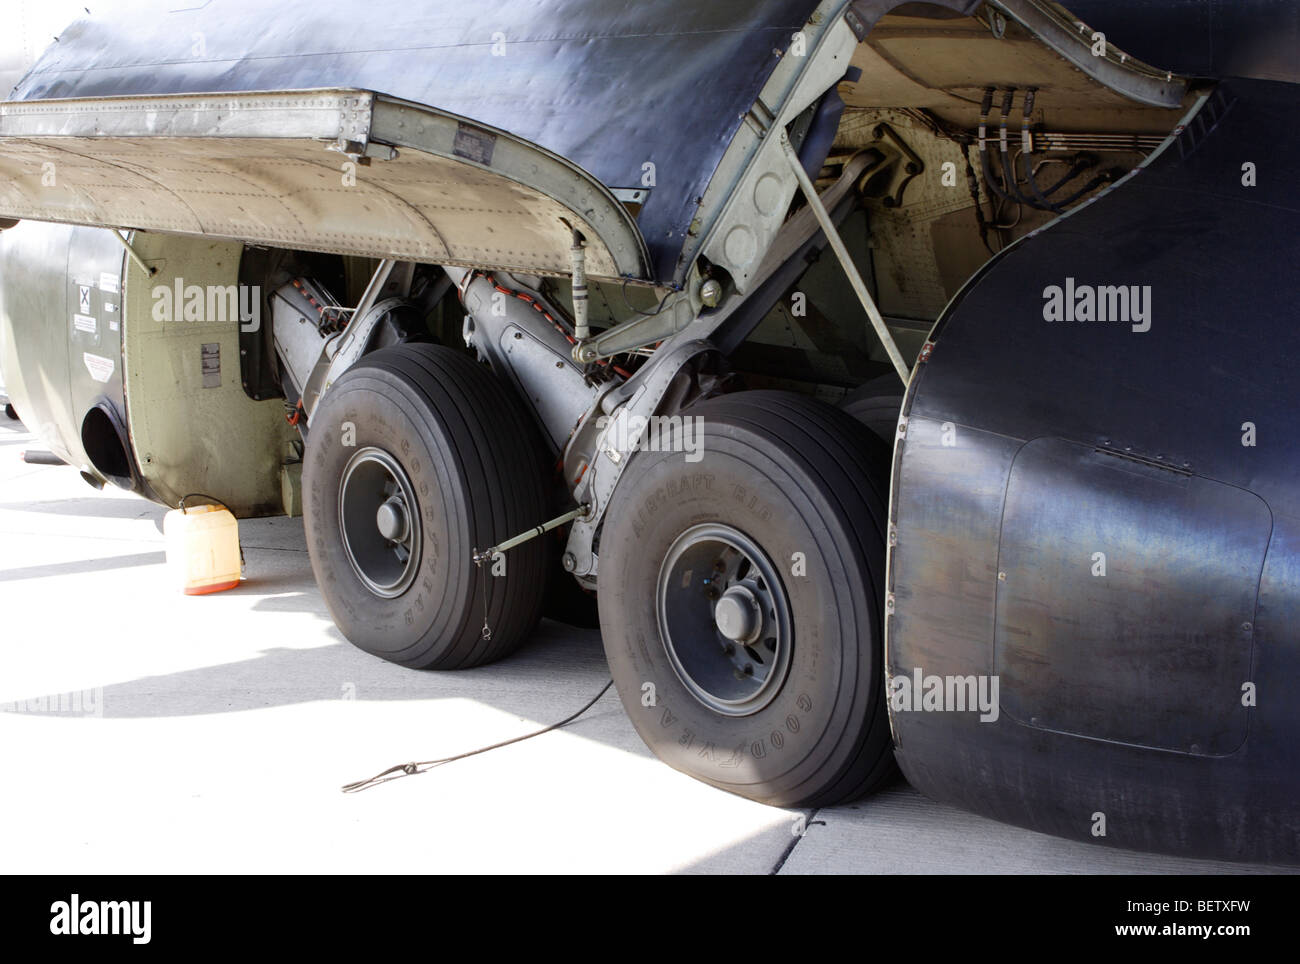 Undercarriage of a Transall C-160 - Stock Image